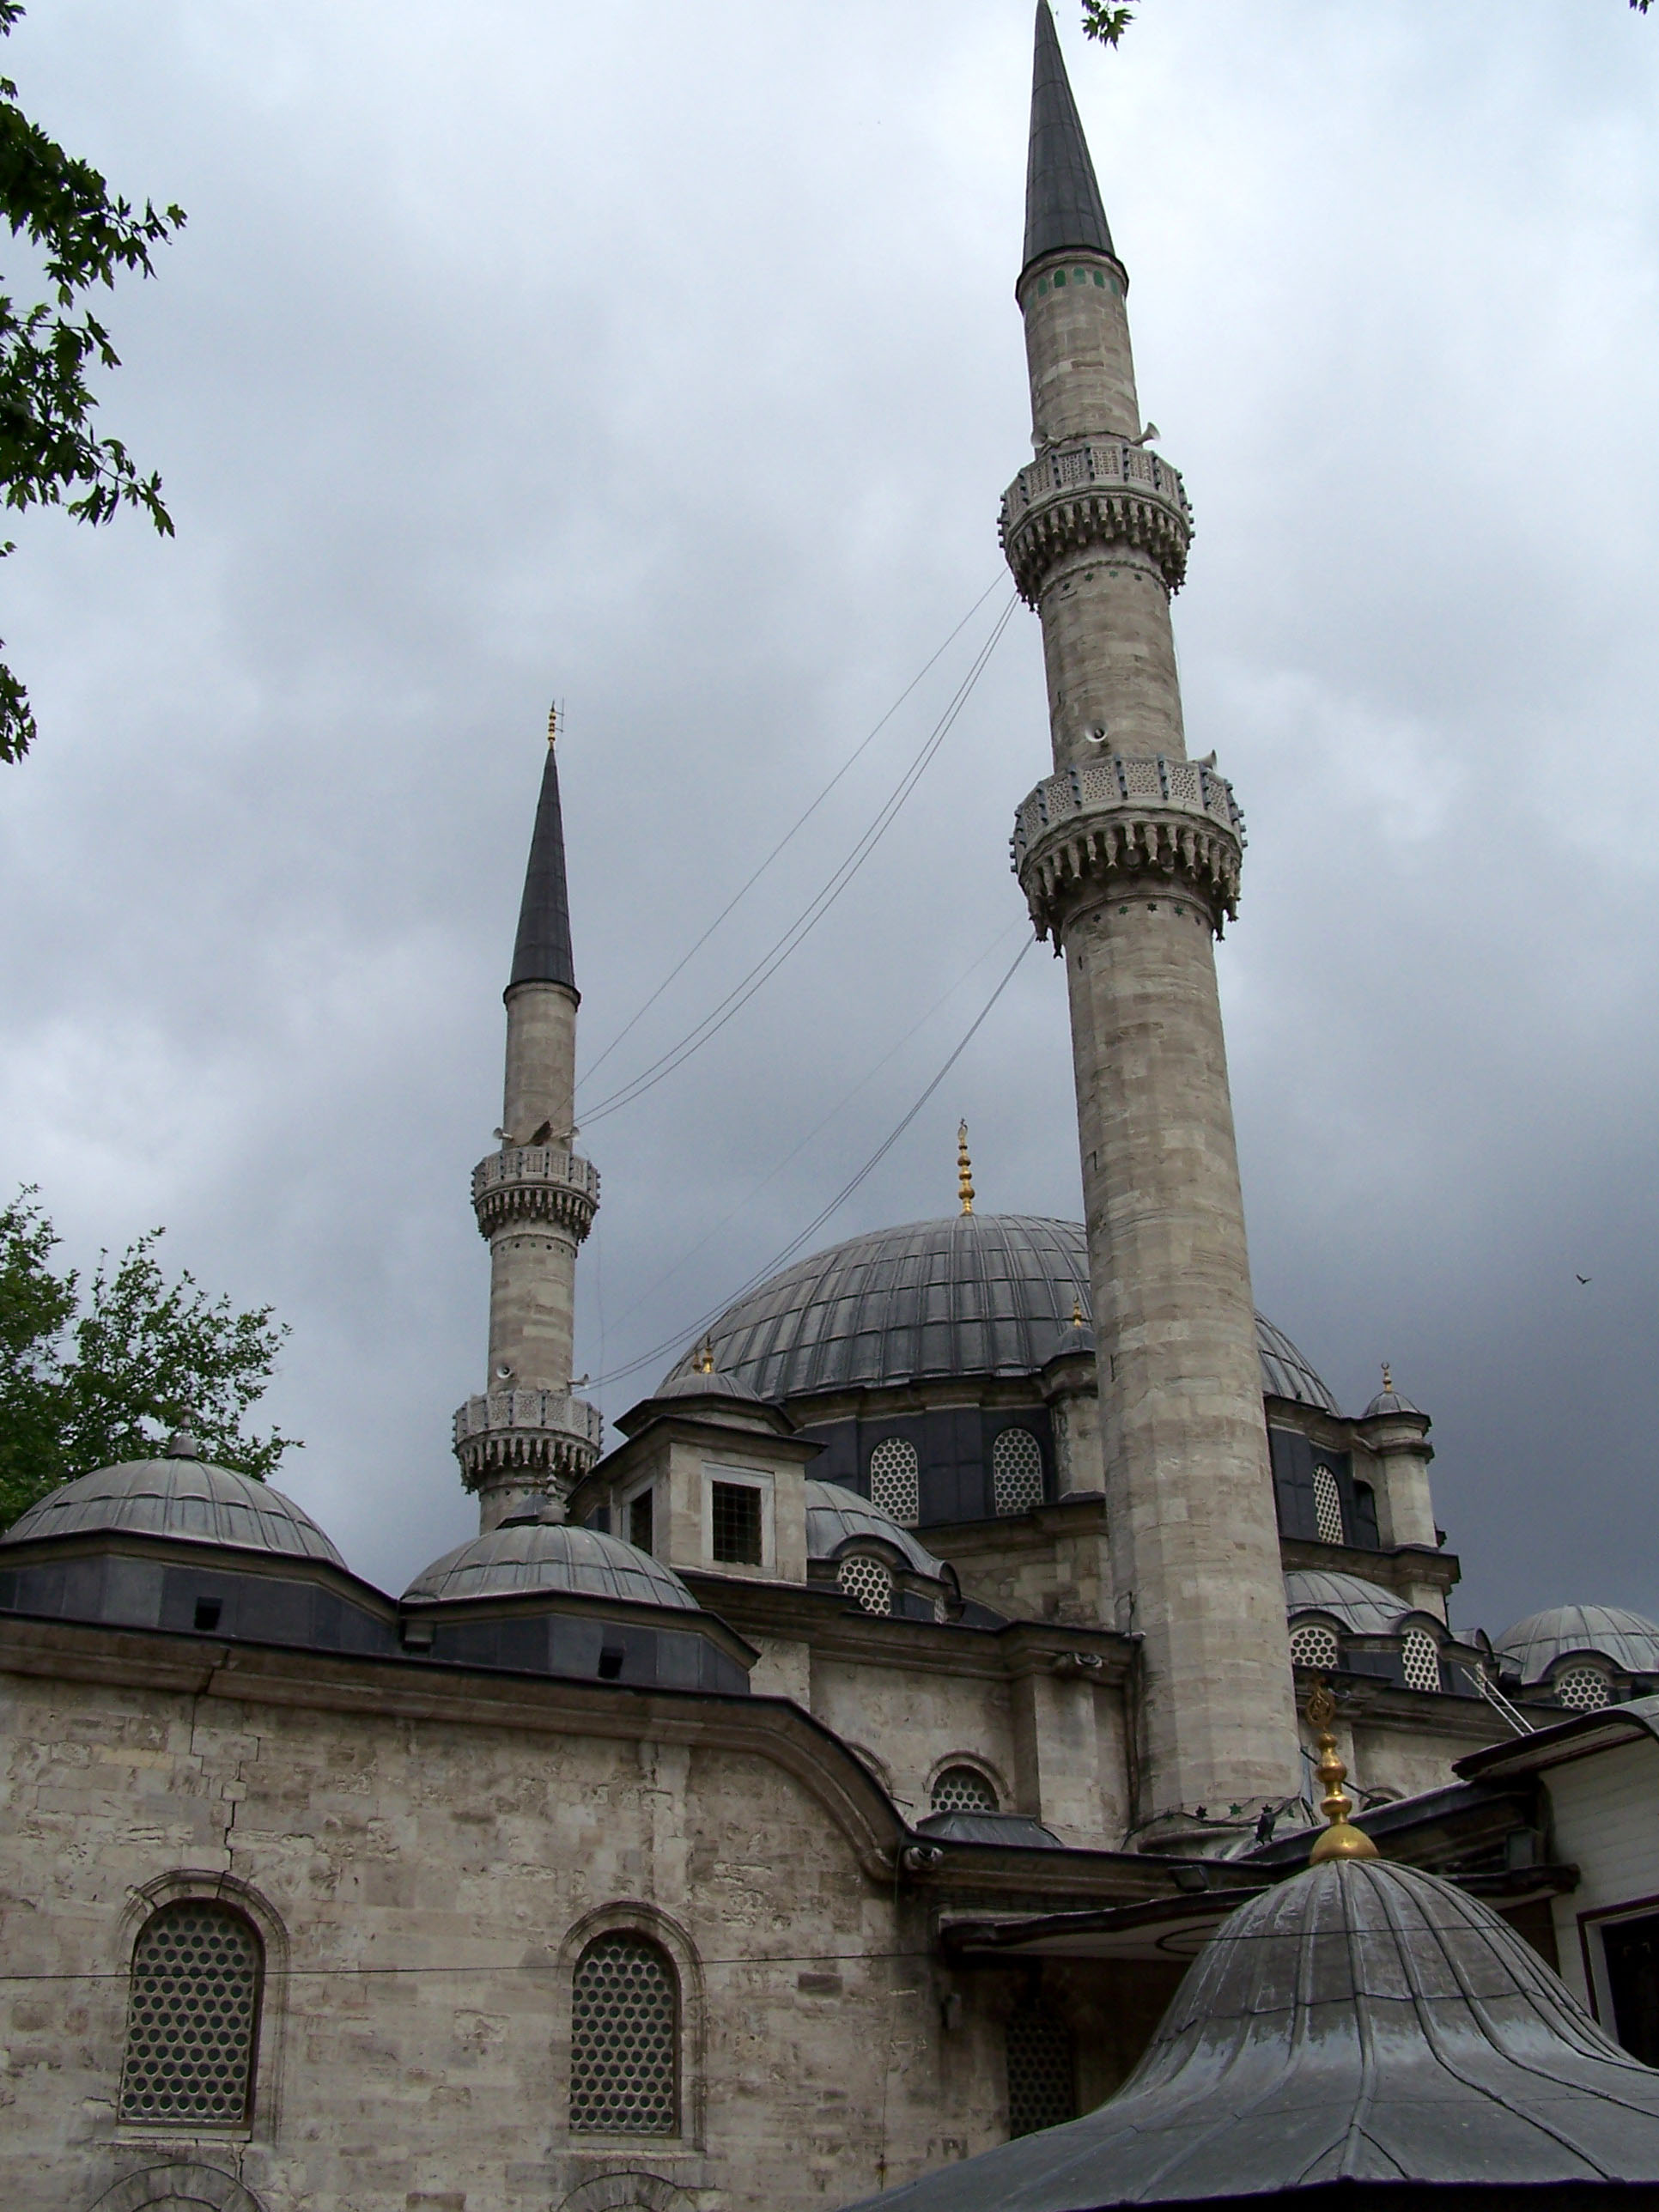 http://upload.wikimedia.org/wikipedia/commons/e/eb/%C4%B0stanbul_5999.jpg